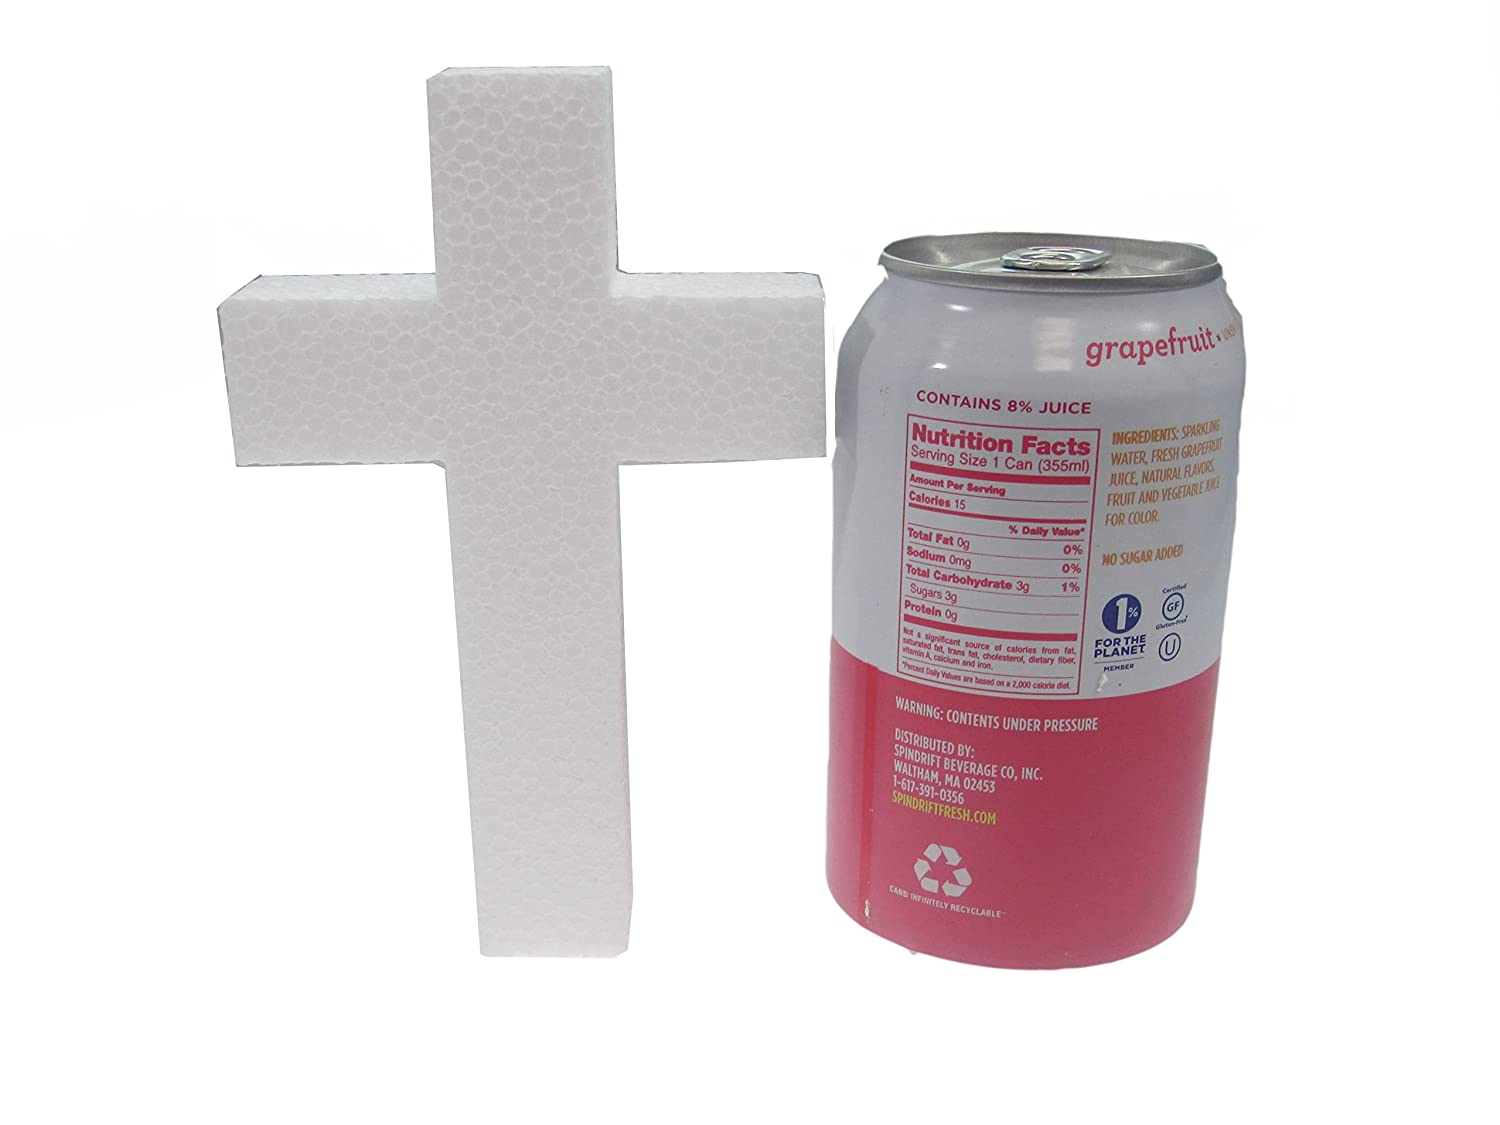 FloraCraft Styrofoam Unassembled Cross 2.9 Inch x 20 Inch x 36 Inch with 2 Inch Face White